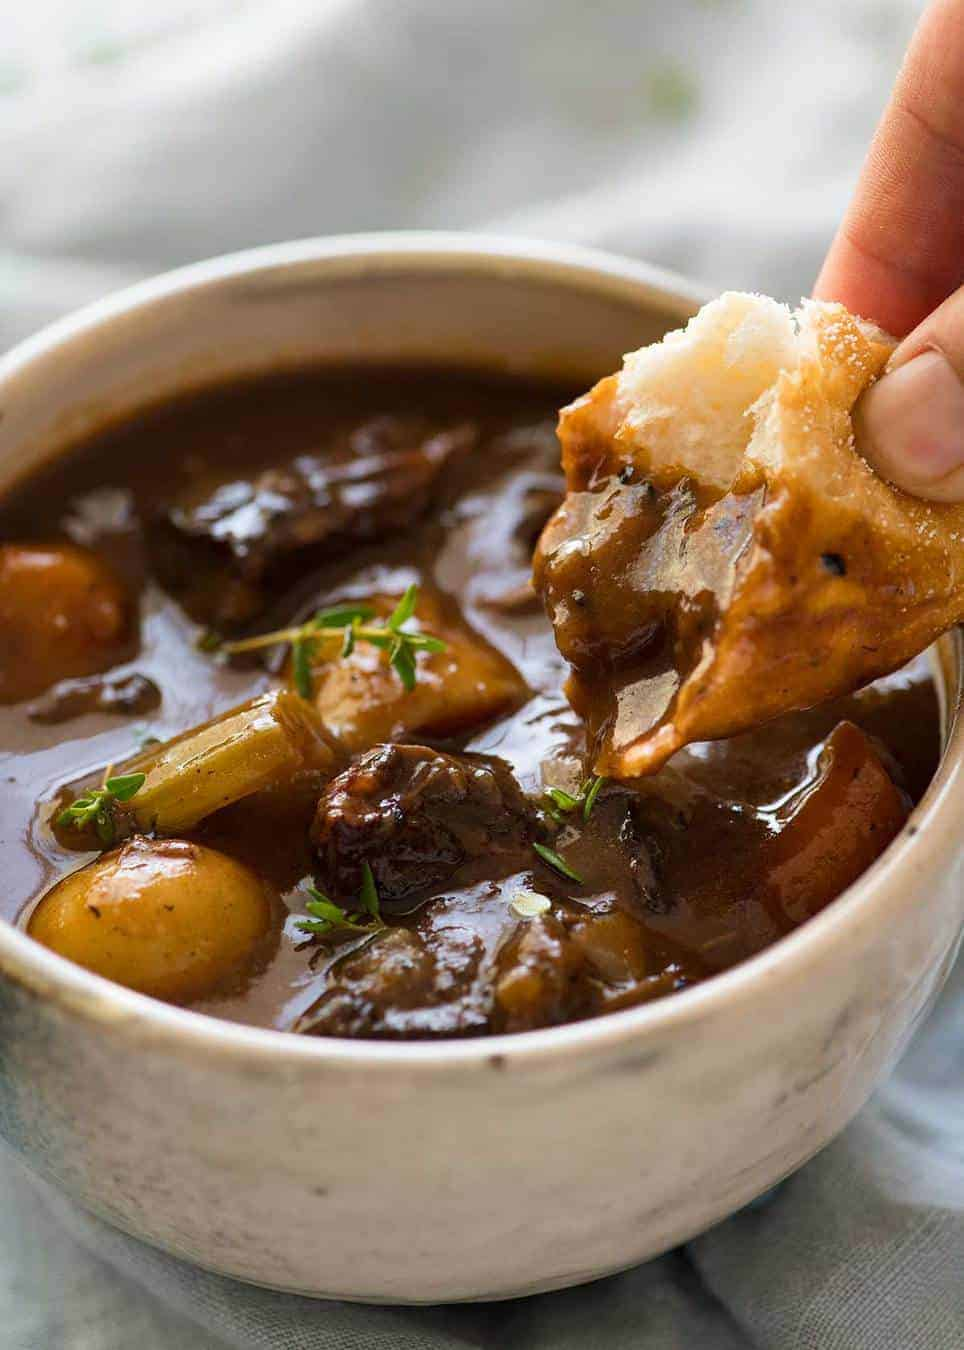 Close up photo of a piece of bread being dunked into Beef Stew with Potatoes and Carrots. The bread shows how thick the gravy sauce is./